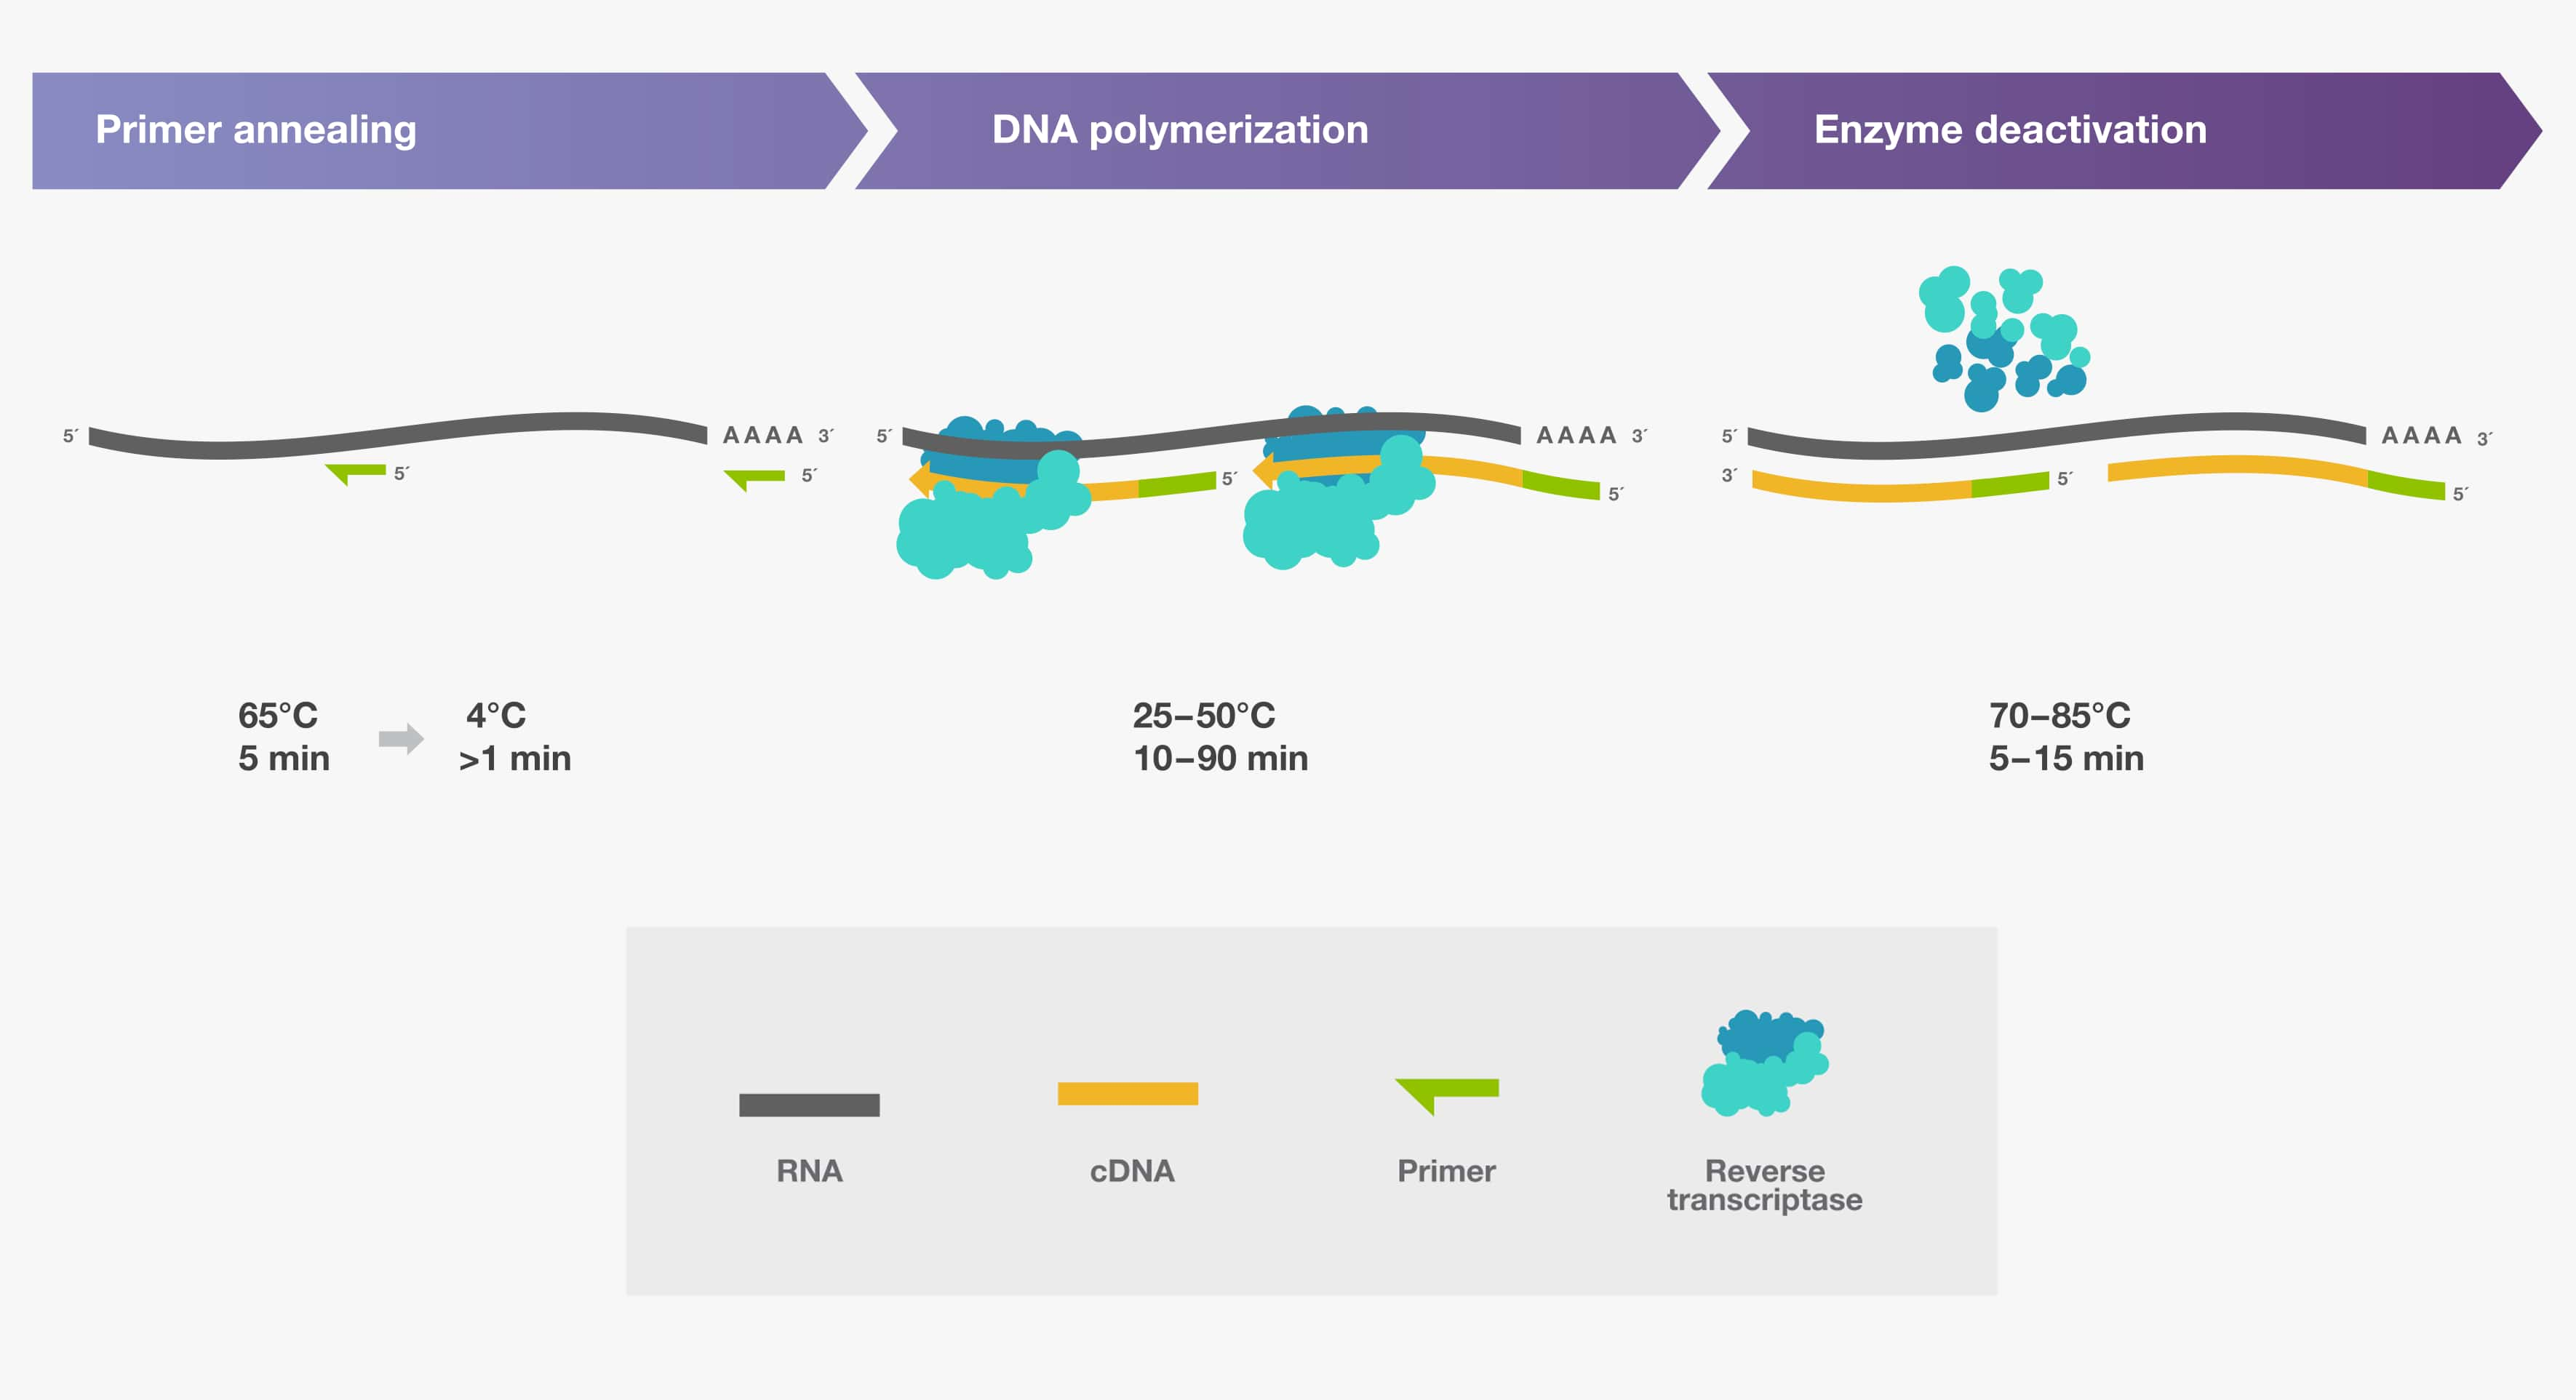 Three main steps of cDNA synthesis